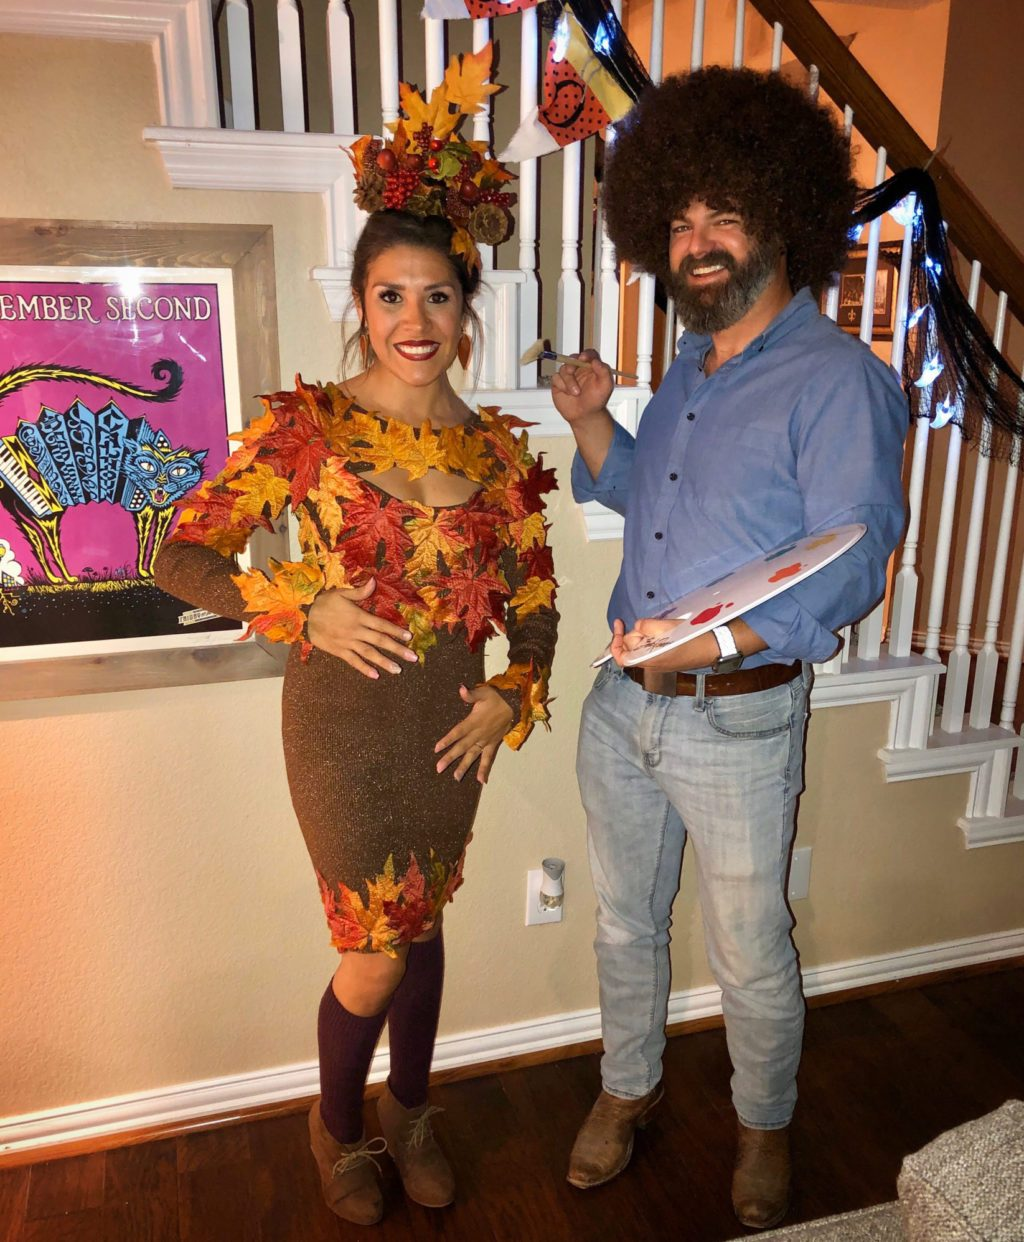 Bob Ross Costume – Get this and more creative halloween costume ideas here.